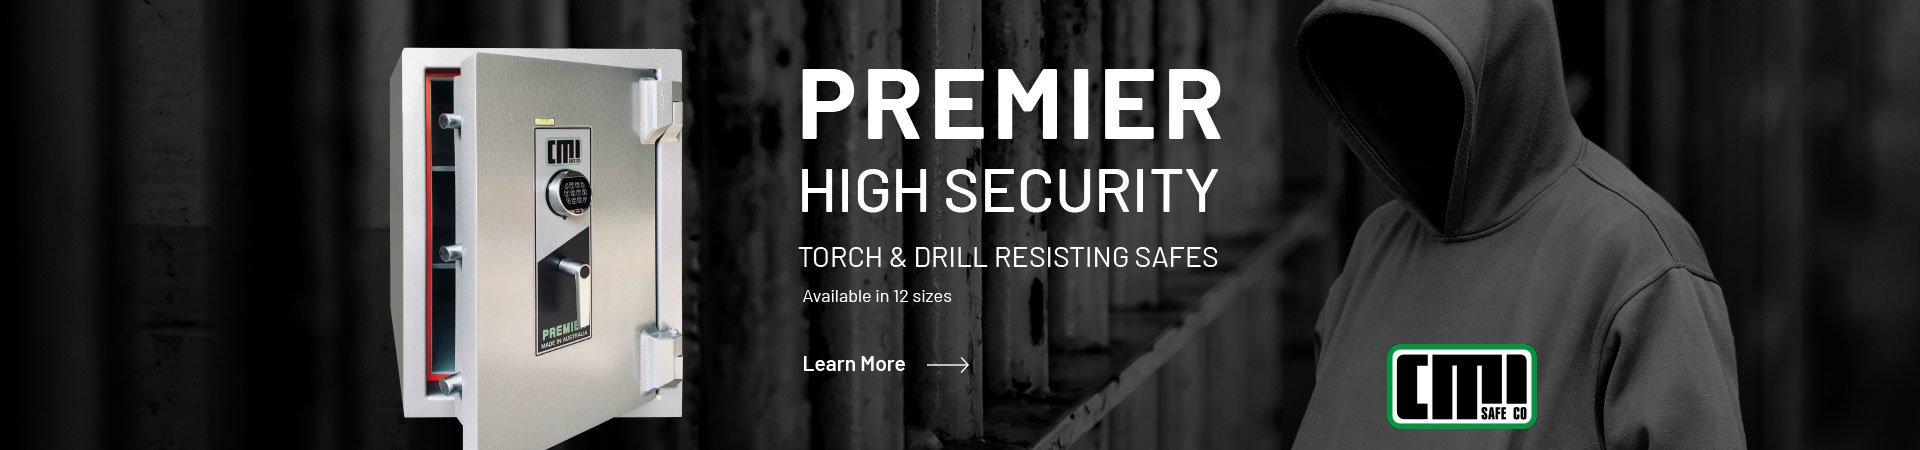 View our Premier Torch & Drill resistant safe